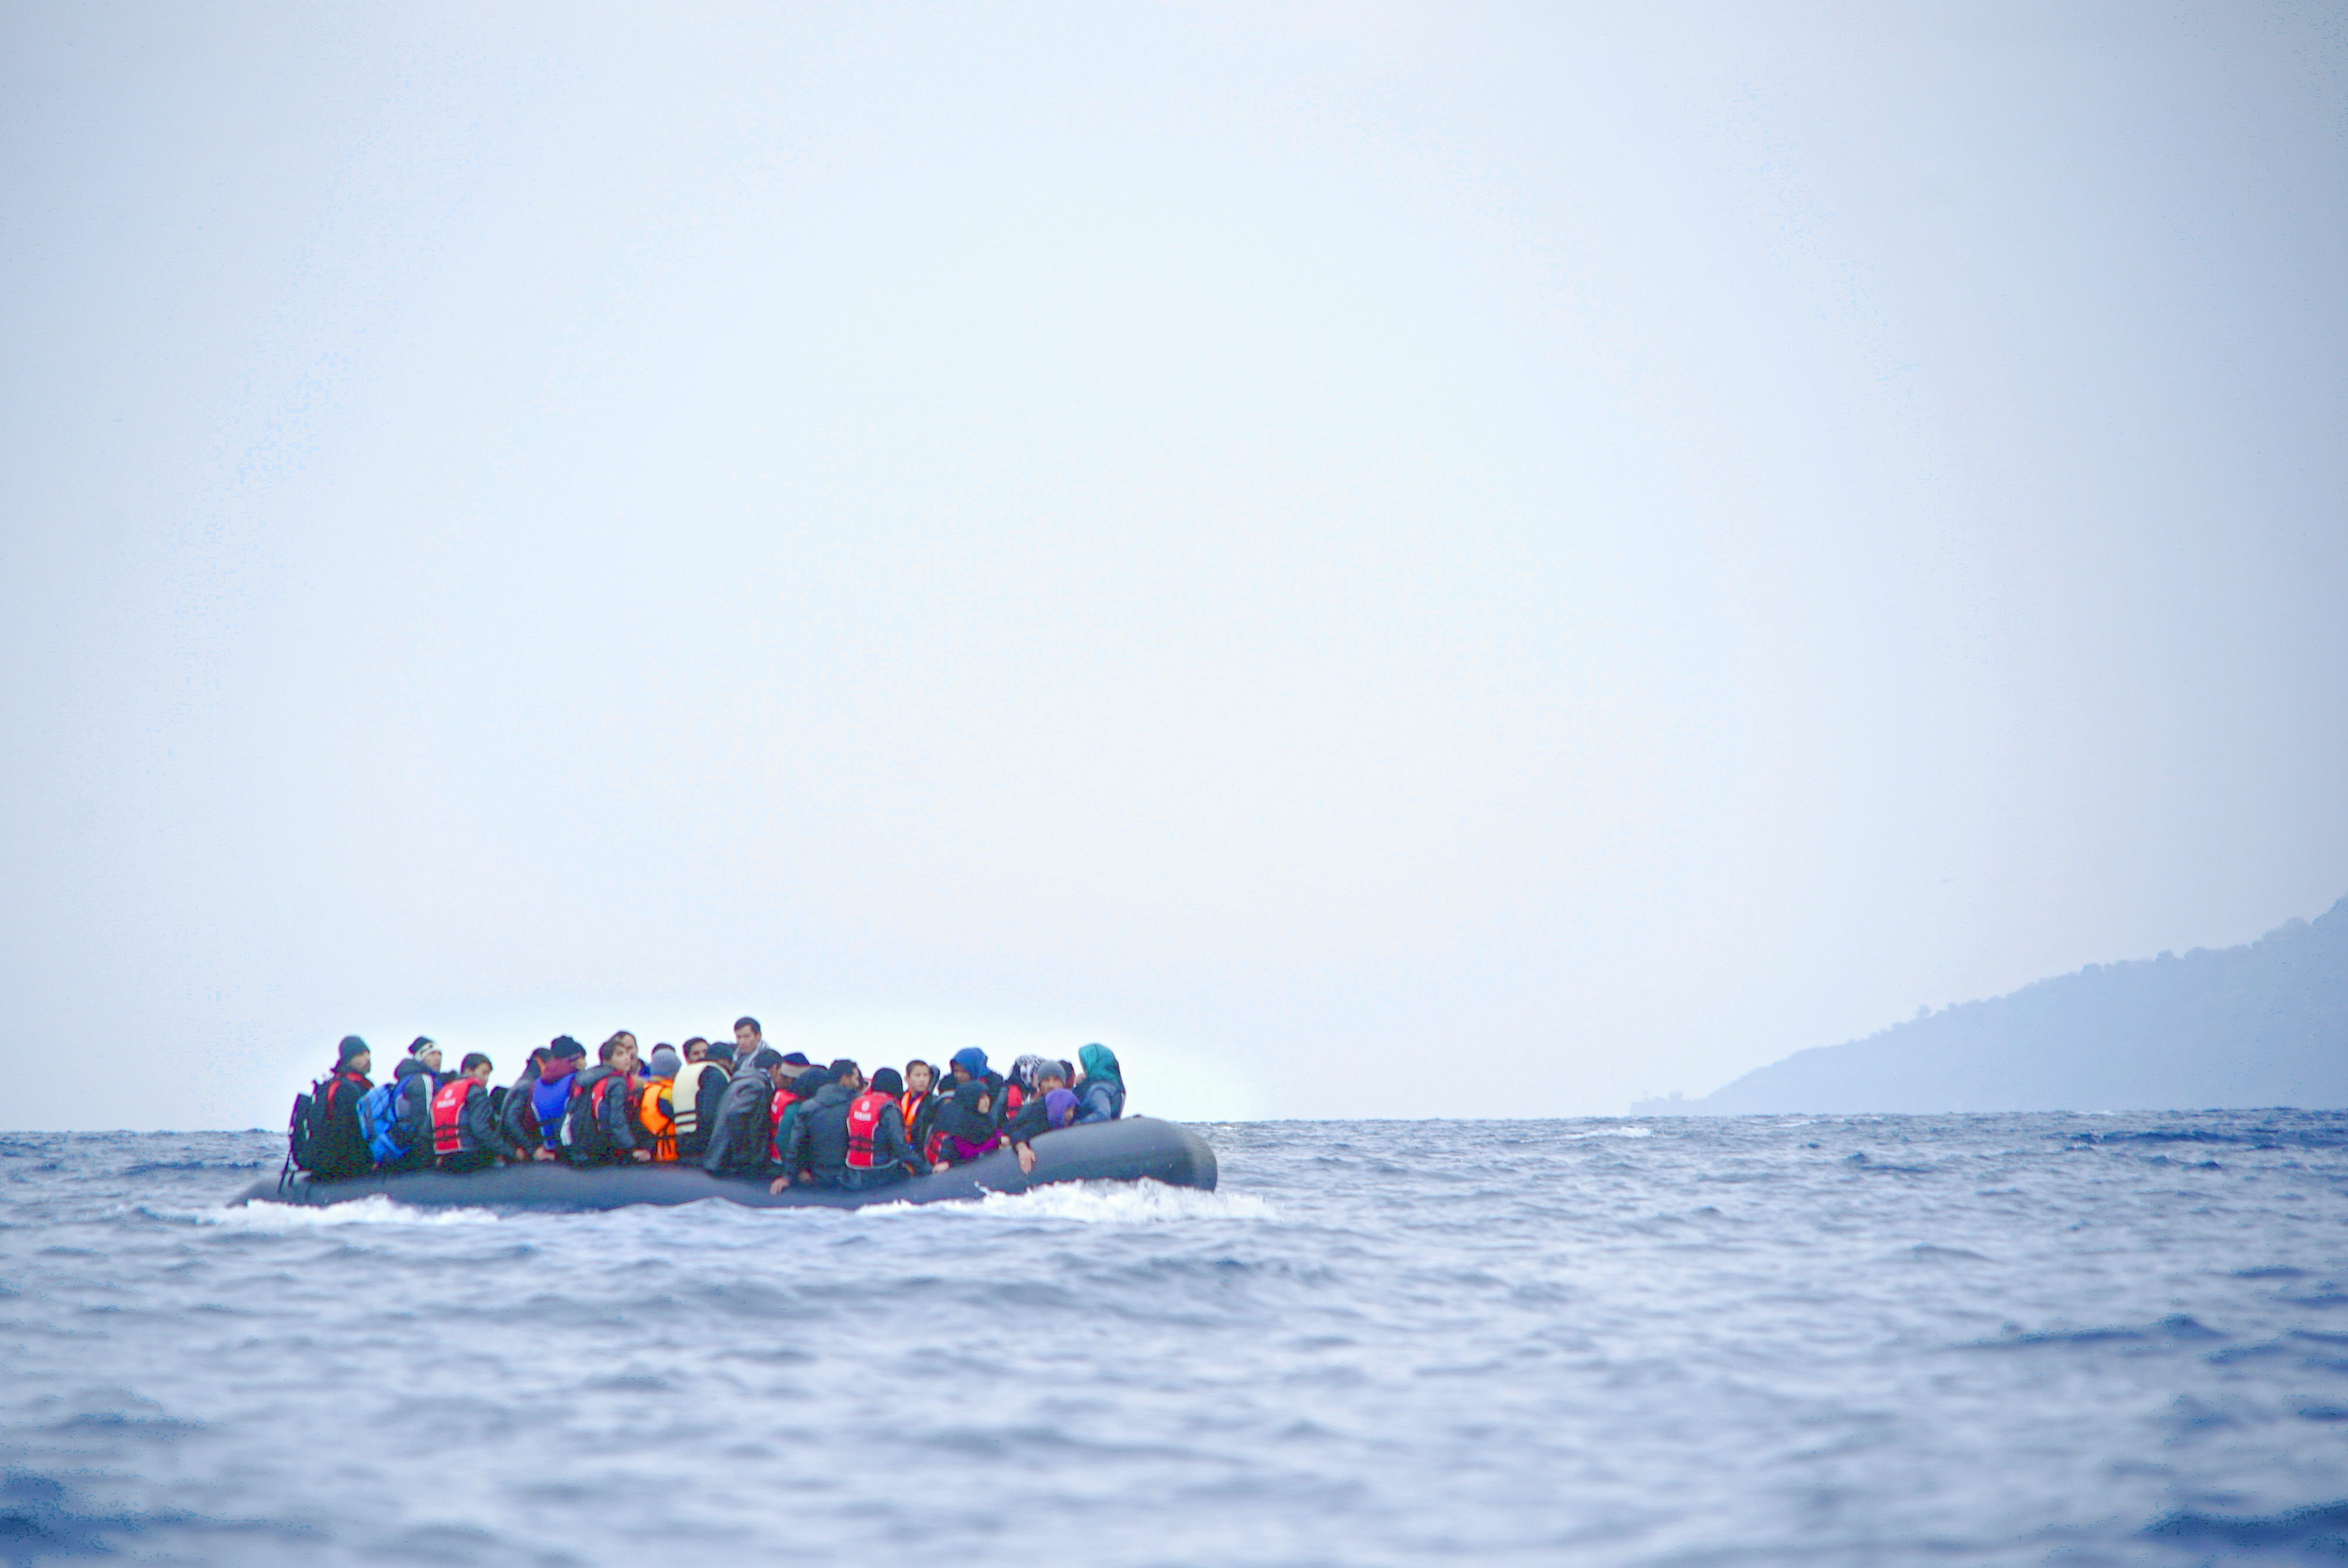 File:Refugees on a boat crossing the Mediterranean sea, heading from  Turkish coast to the northeastern Greek island of Lesbos, 29 January  2016.jpg - Wikimedia Commons